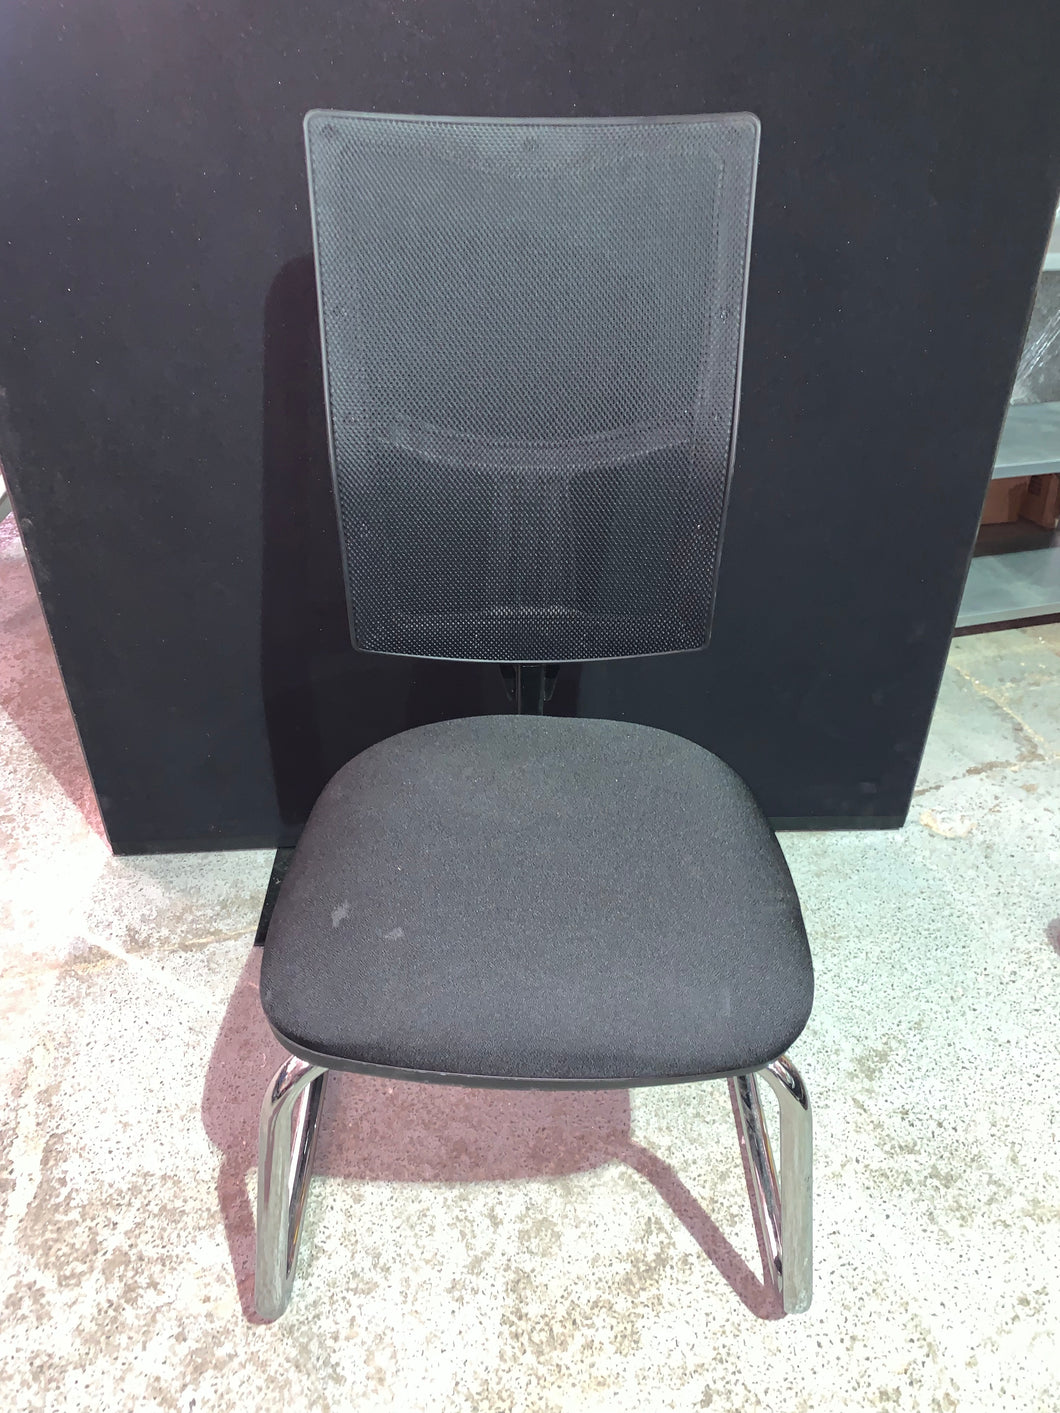 Mesh Back Cantilever Chair Black - Flogit2us.com